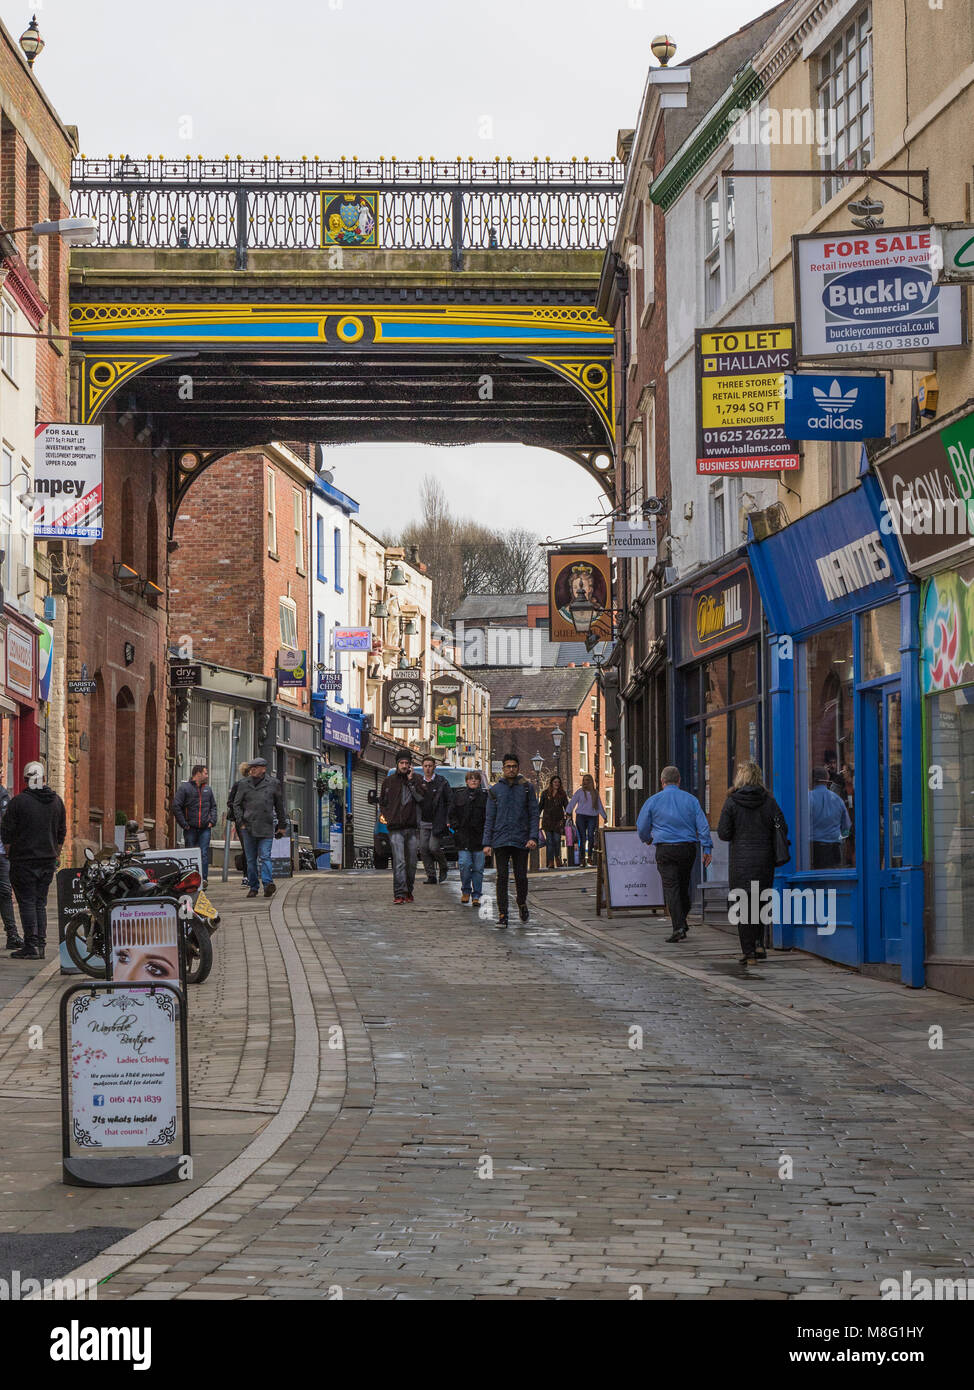 St Petersgate Bridge, Stockport Town Centre Shopping area, Greater Manchester, UK - Stock Image